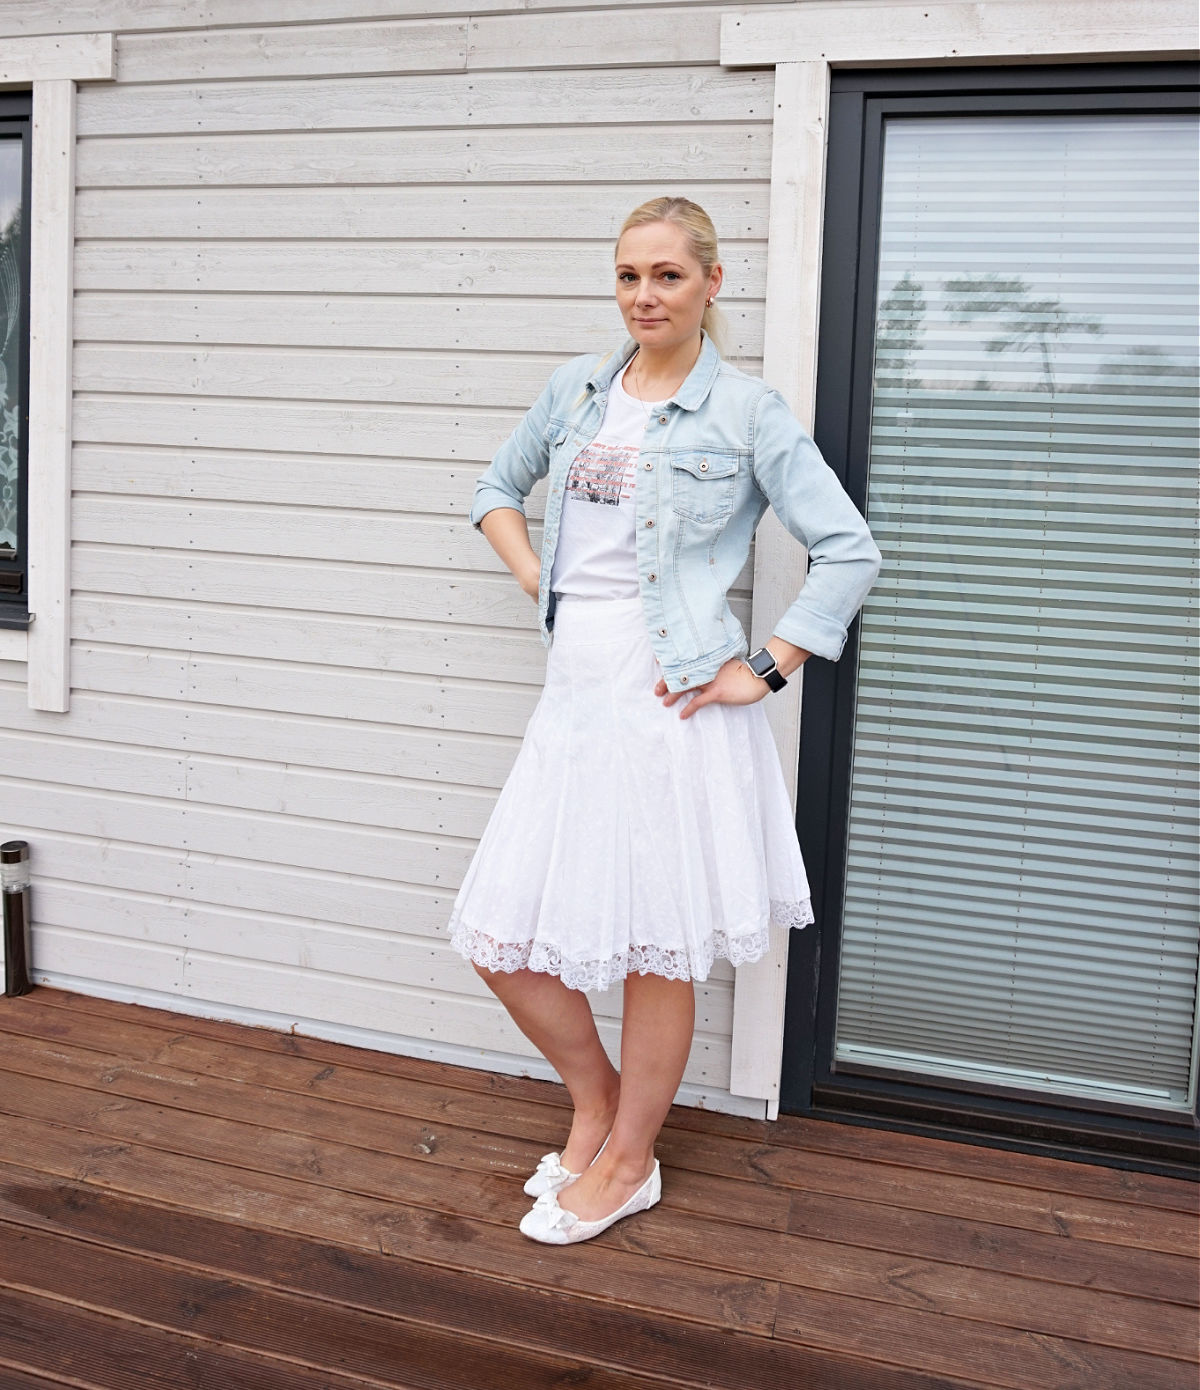 Simple white on white outfit with a touch of light blue